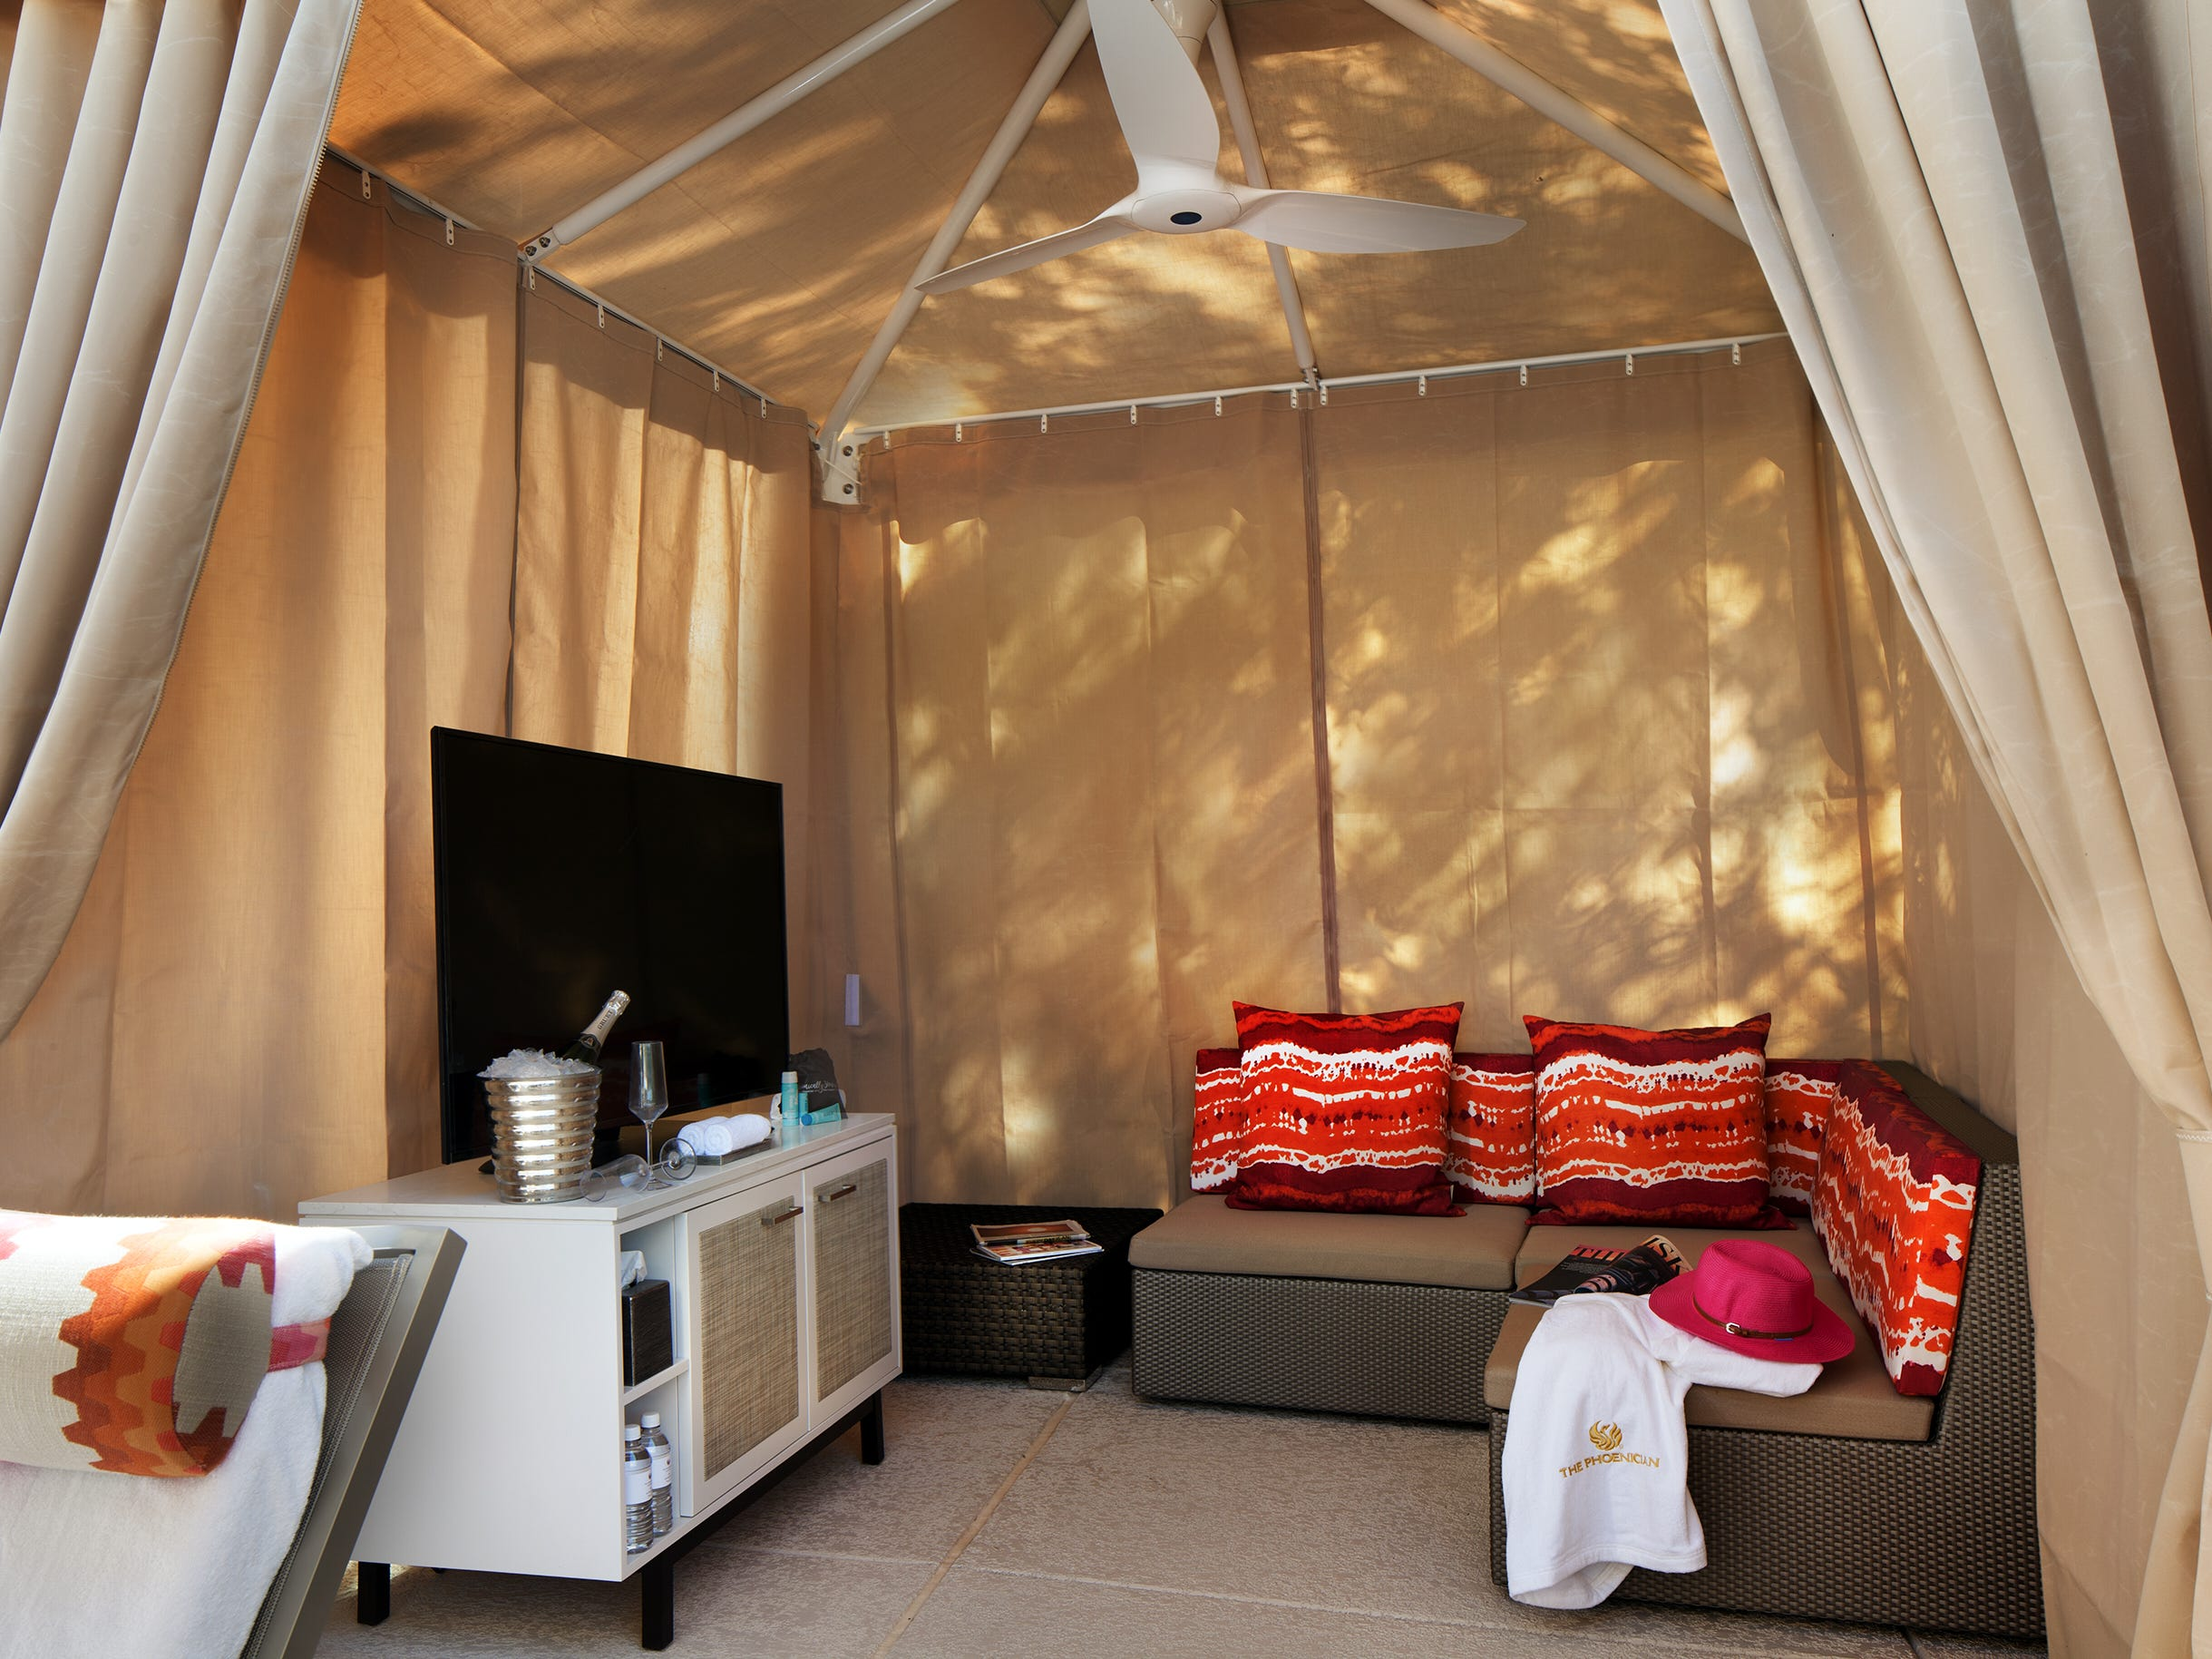 A cozy poolside cabana at The Phoenician in Phoenix comes with a flat-screen TV, couch, bottled water and a choice of snack, including guacamole. Champagne is optional. The cabanas range from $250 to $450 a day depending on location, season and day of the week.